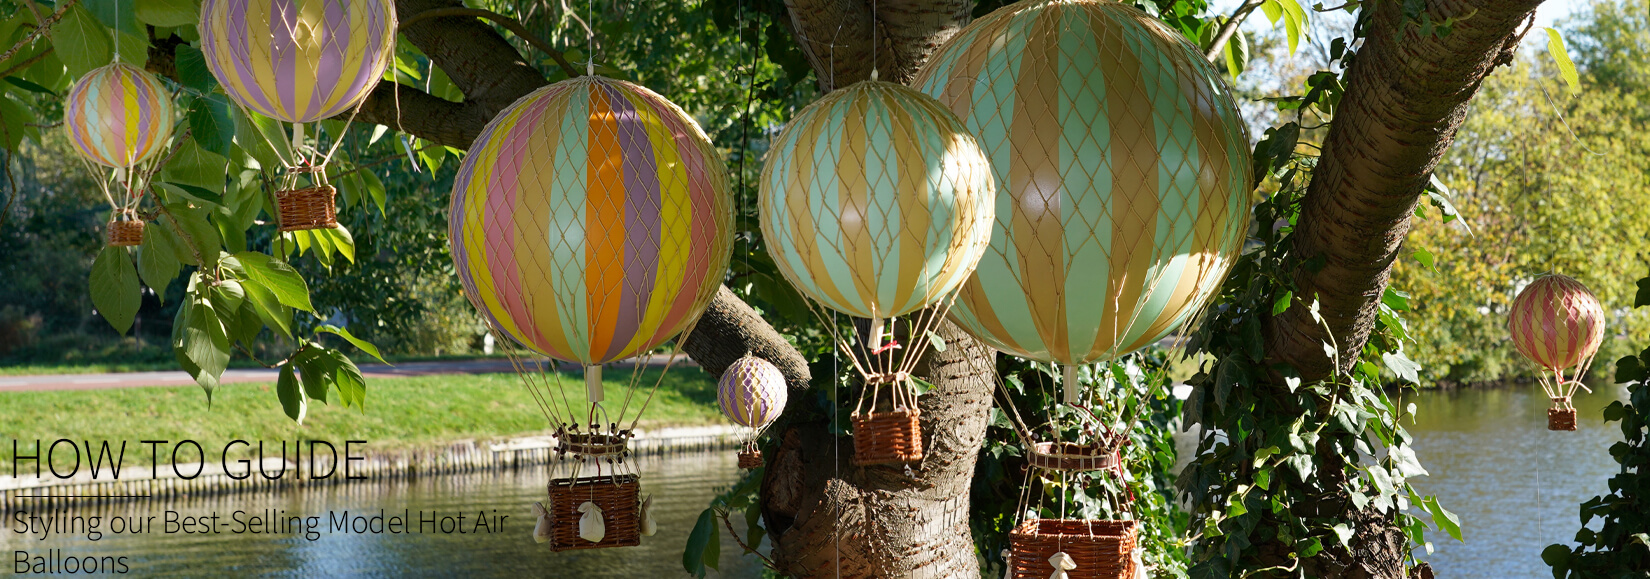 Our Best-Selling Model Hot Air Balloons & How To Style Them